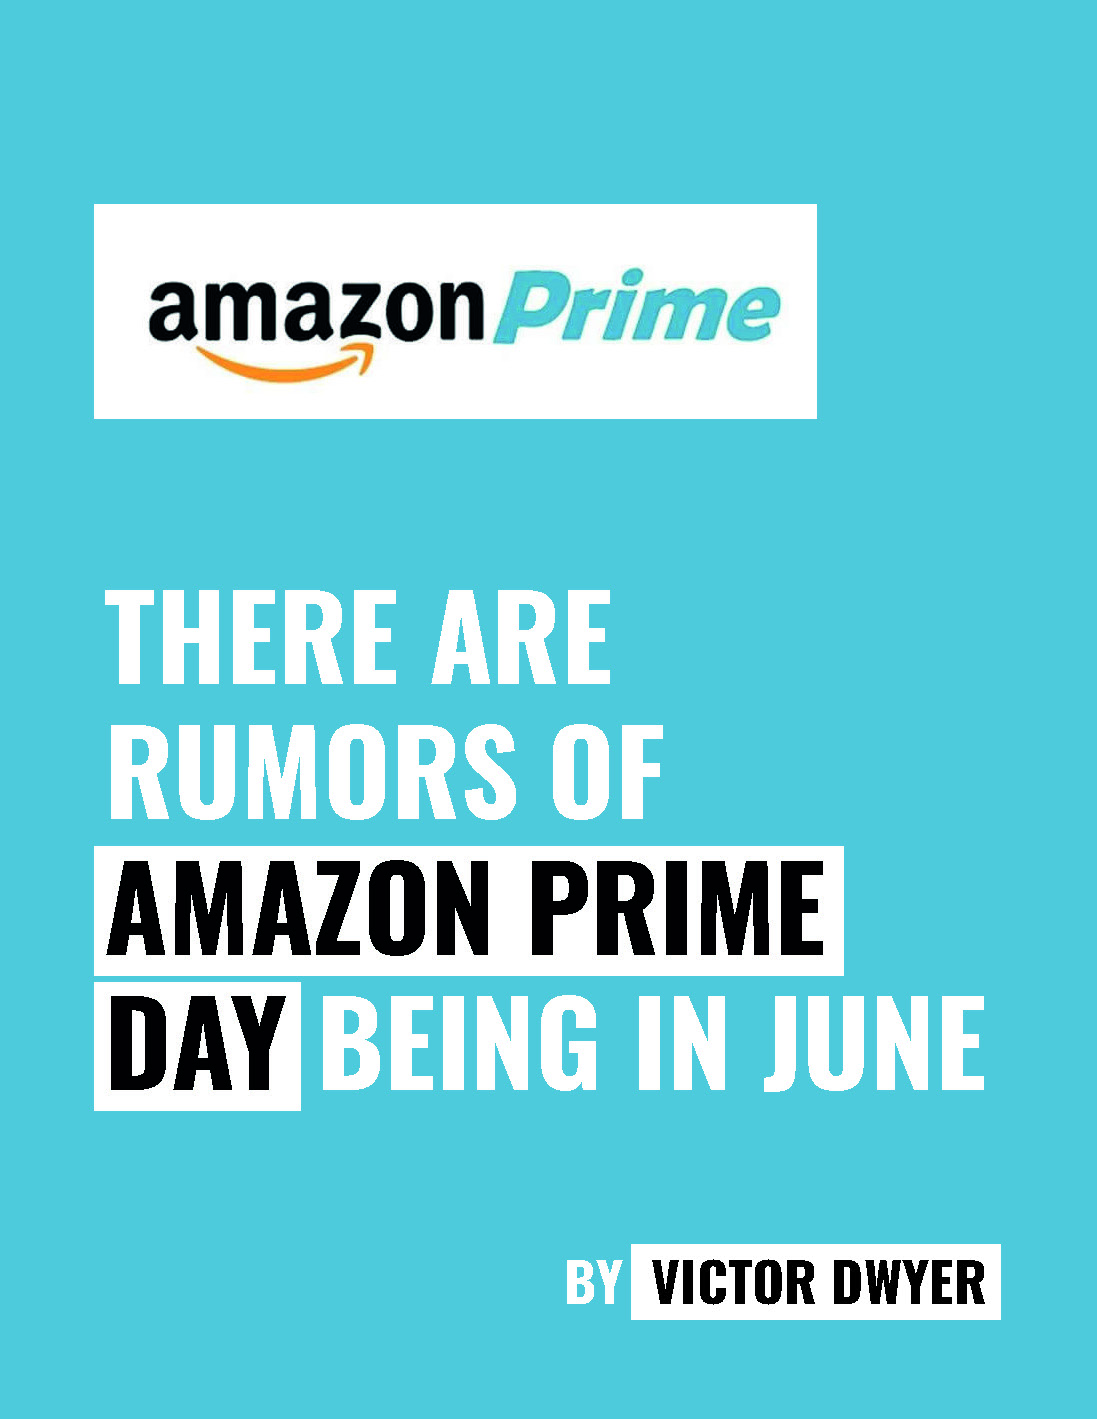 Amazon-Monthly-News-April-2021_Page_03-1